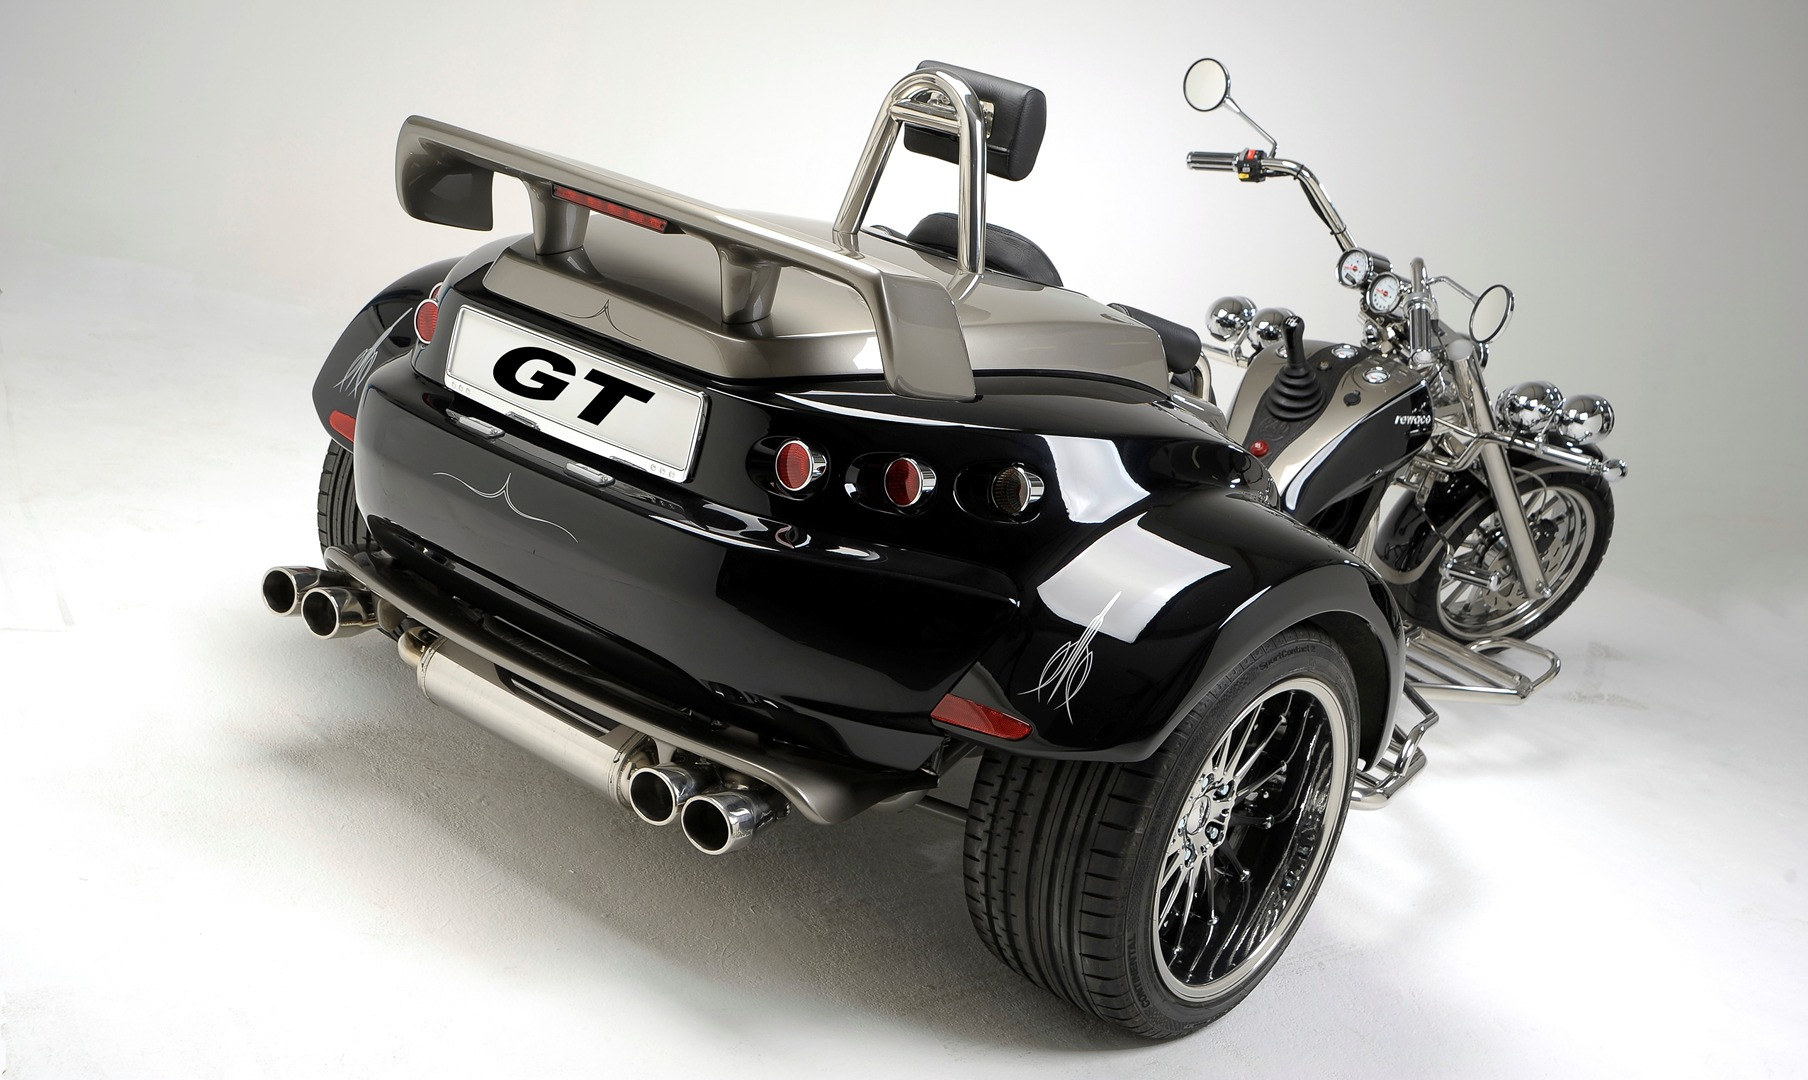 rewaco motorcycle trike automatic transmission gt offered